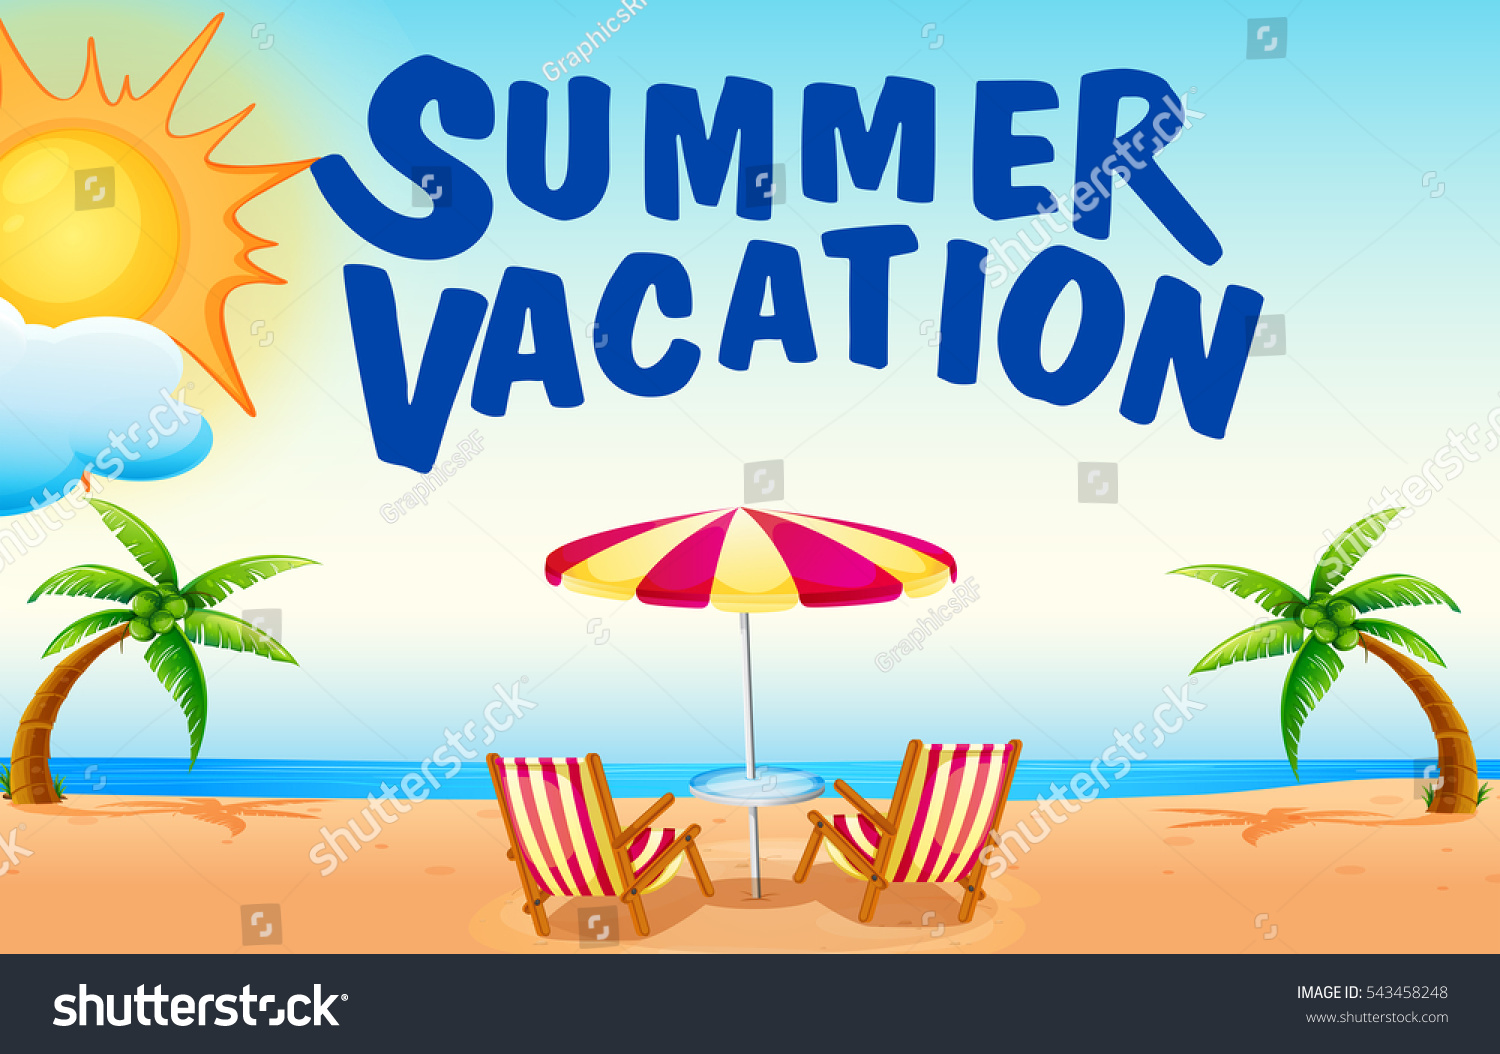 summer vacation Get ready for a fun-filled summer with travel channel's hot vacation ideas whether it's a route 66 road trip in an rv, hiking the trails in yosemite national park, taking off for a low-key getaway in myrtle beach or spending a day with the family at six flags, you're in for a summer to remember.